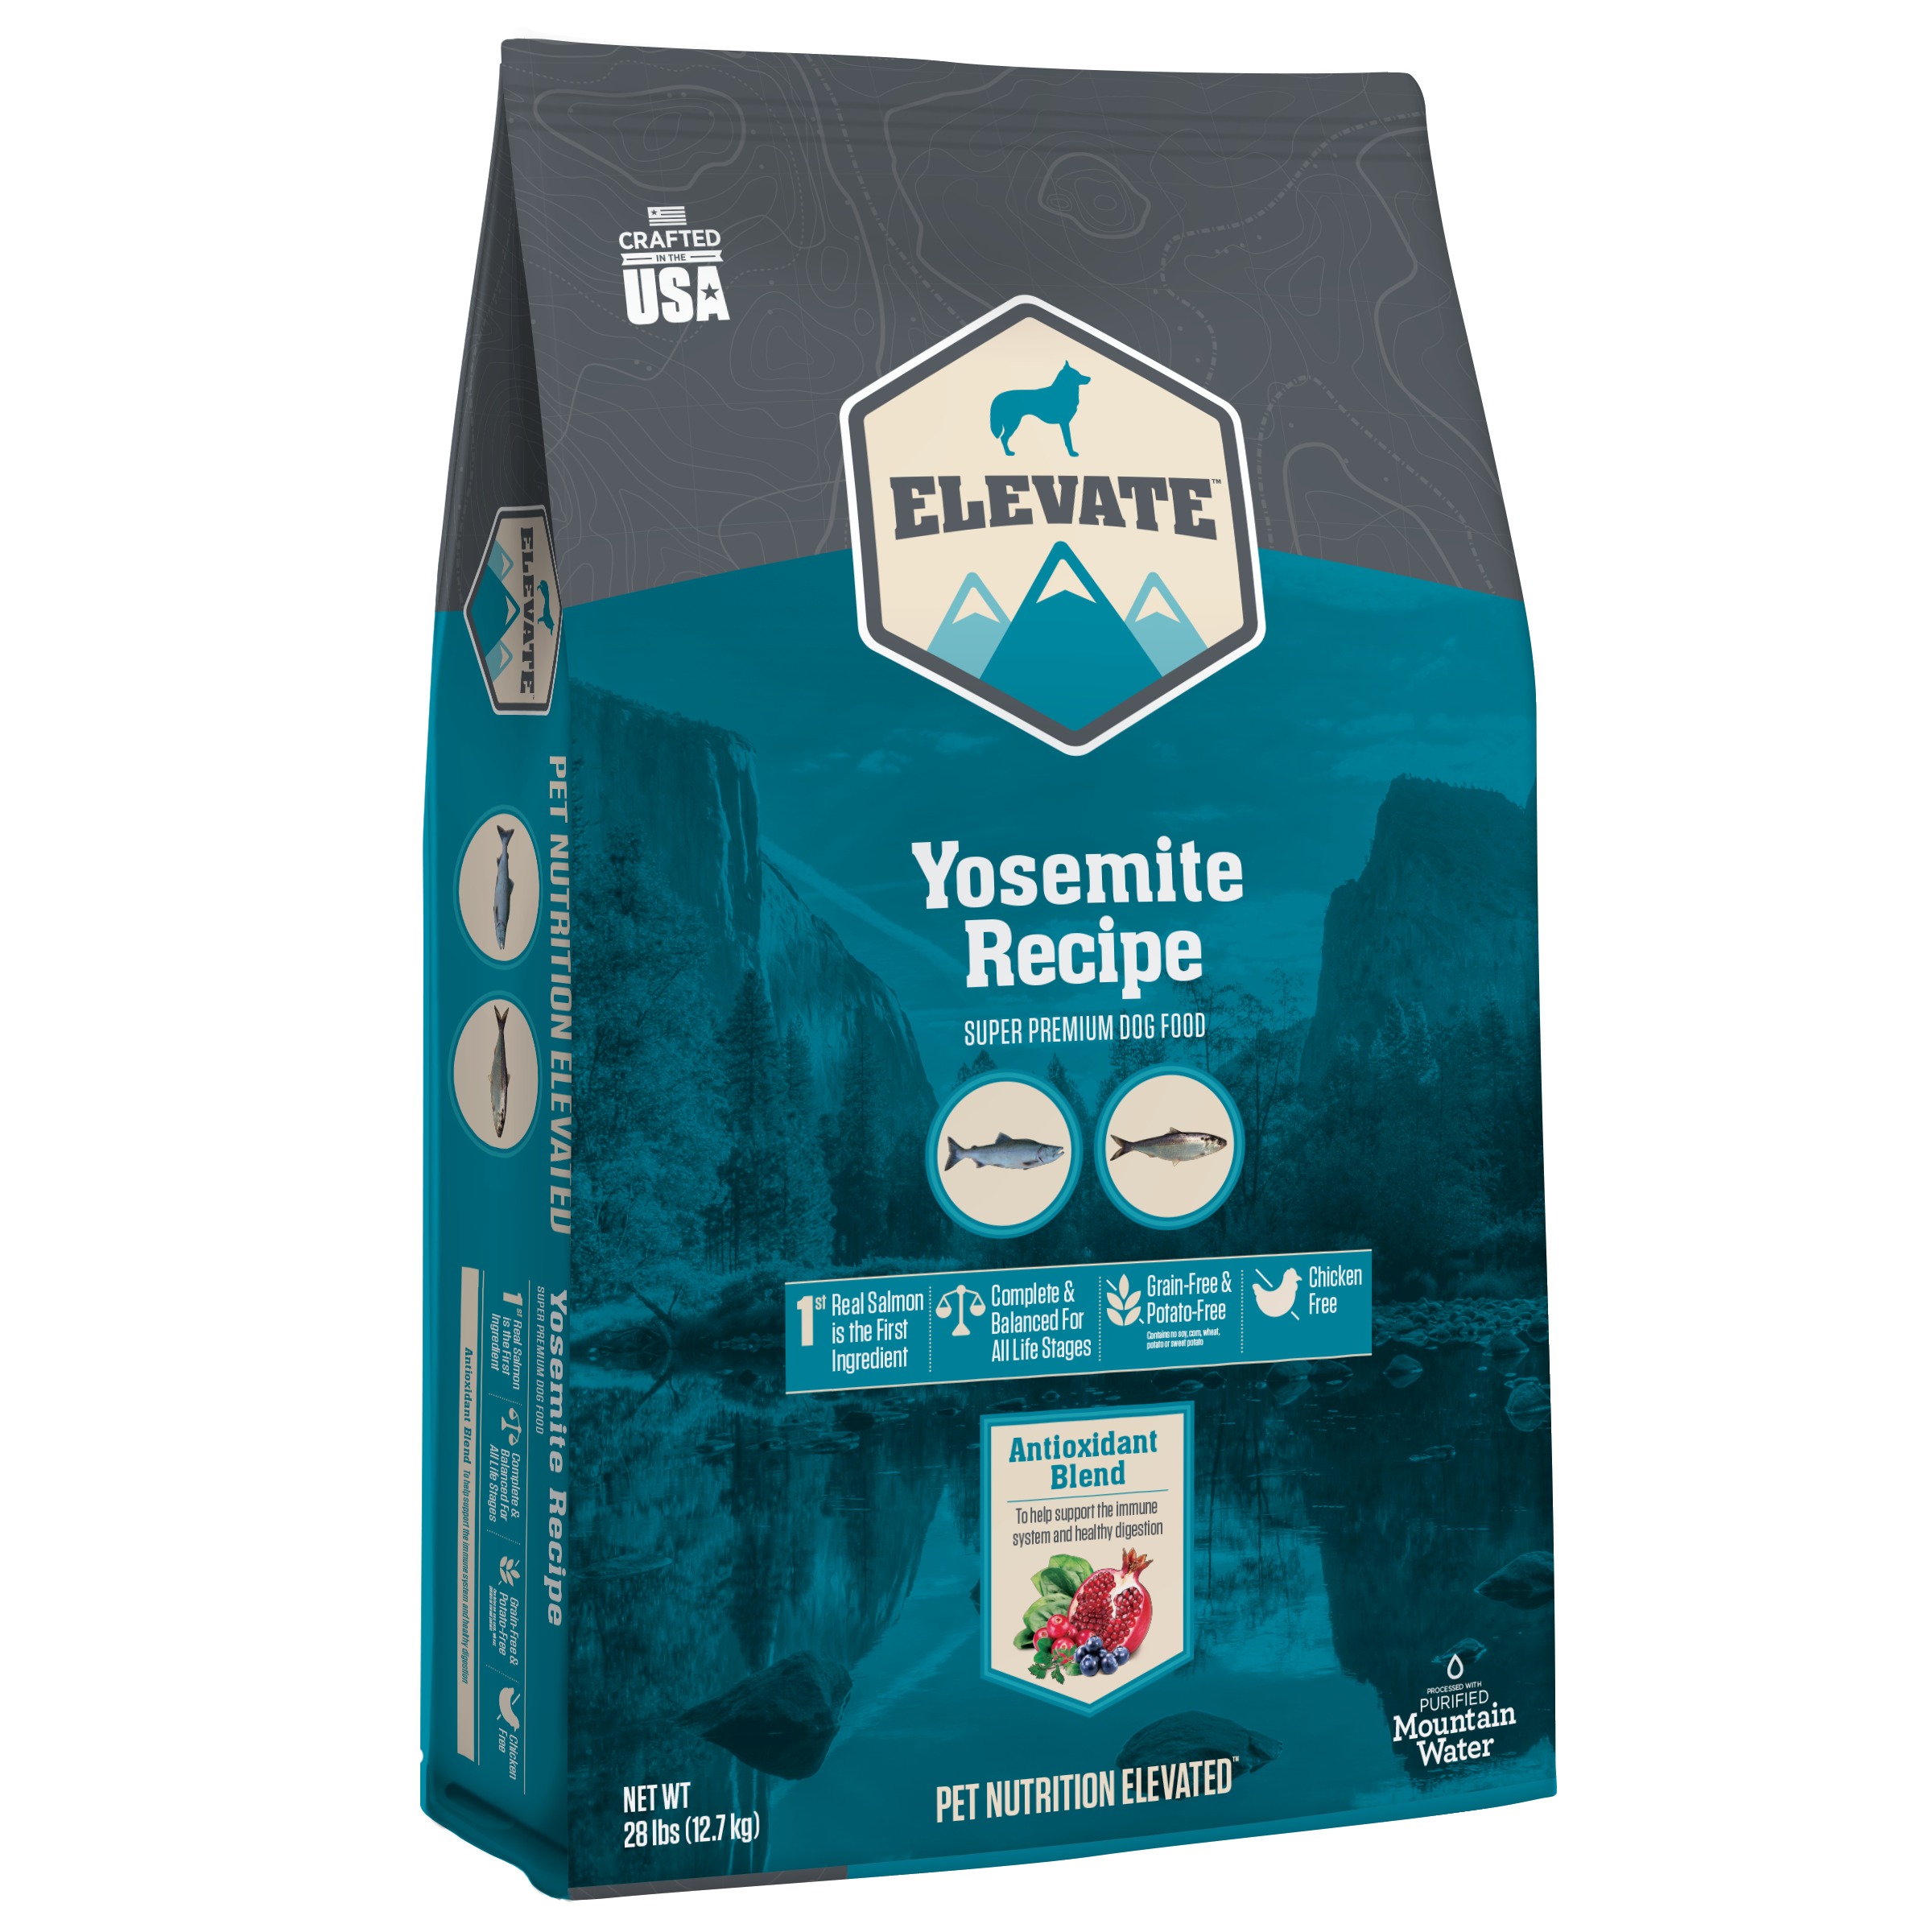 Elevate Yosemite Fish Recipe Super Premium Grain-Free Dry Dog Food, 28-lb